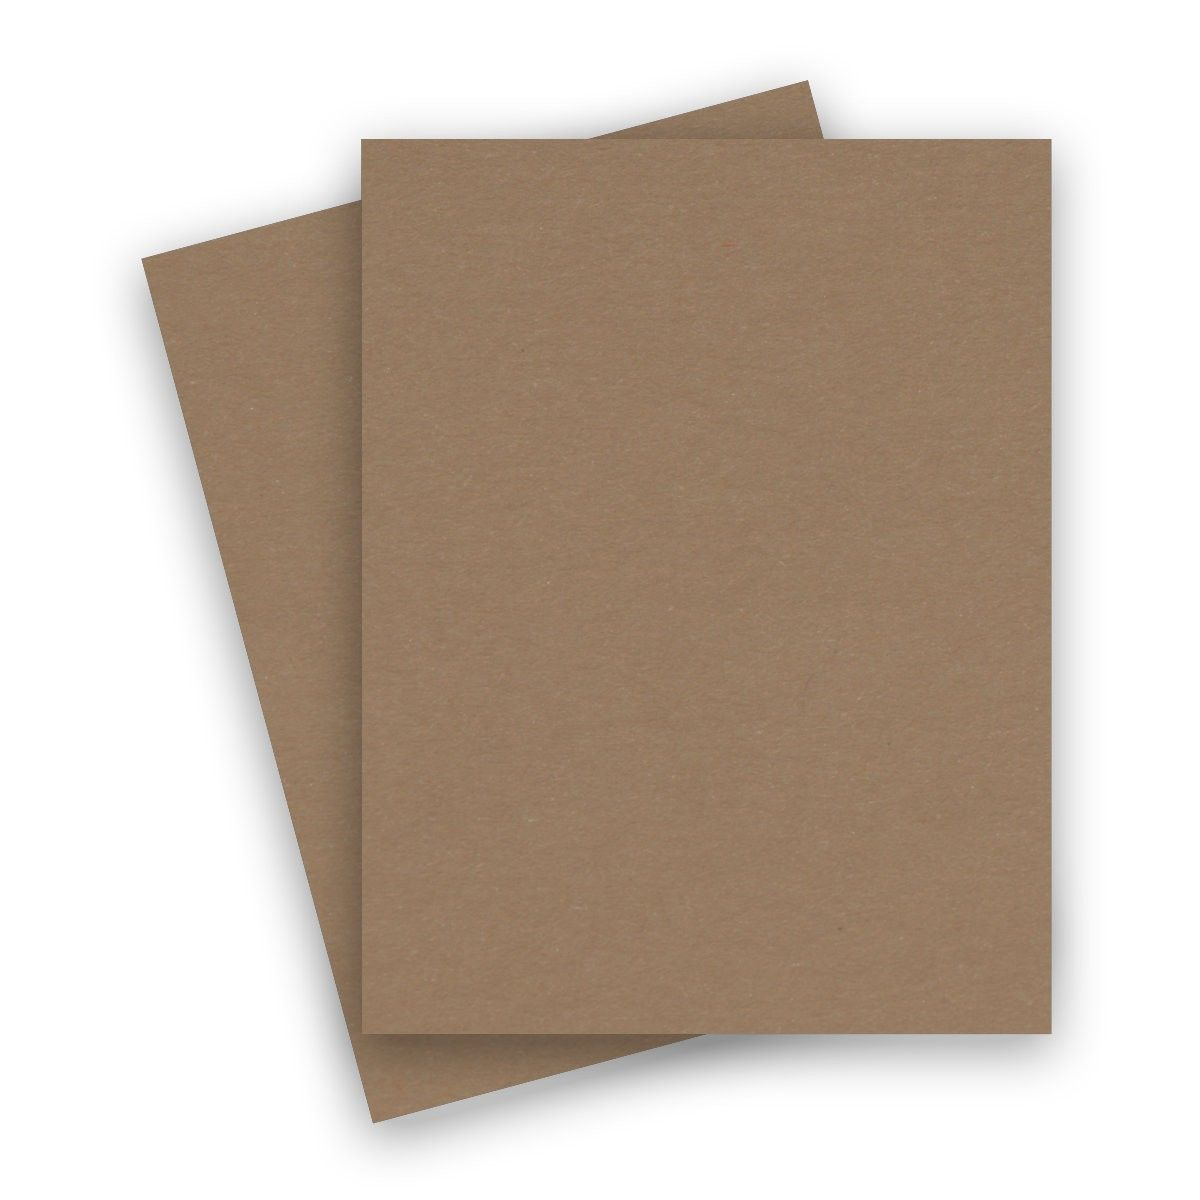 Clearance Basis Colors 8 5 X 11 Cardstock Paper Light Brown 80lb Cover 100 Pk In 2021 Paper Light Cardstock Paper Paper